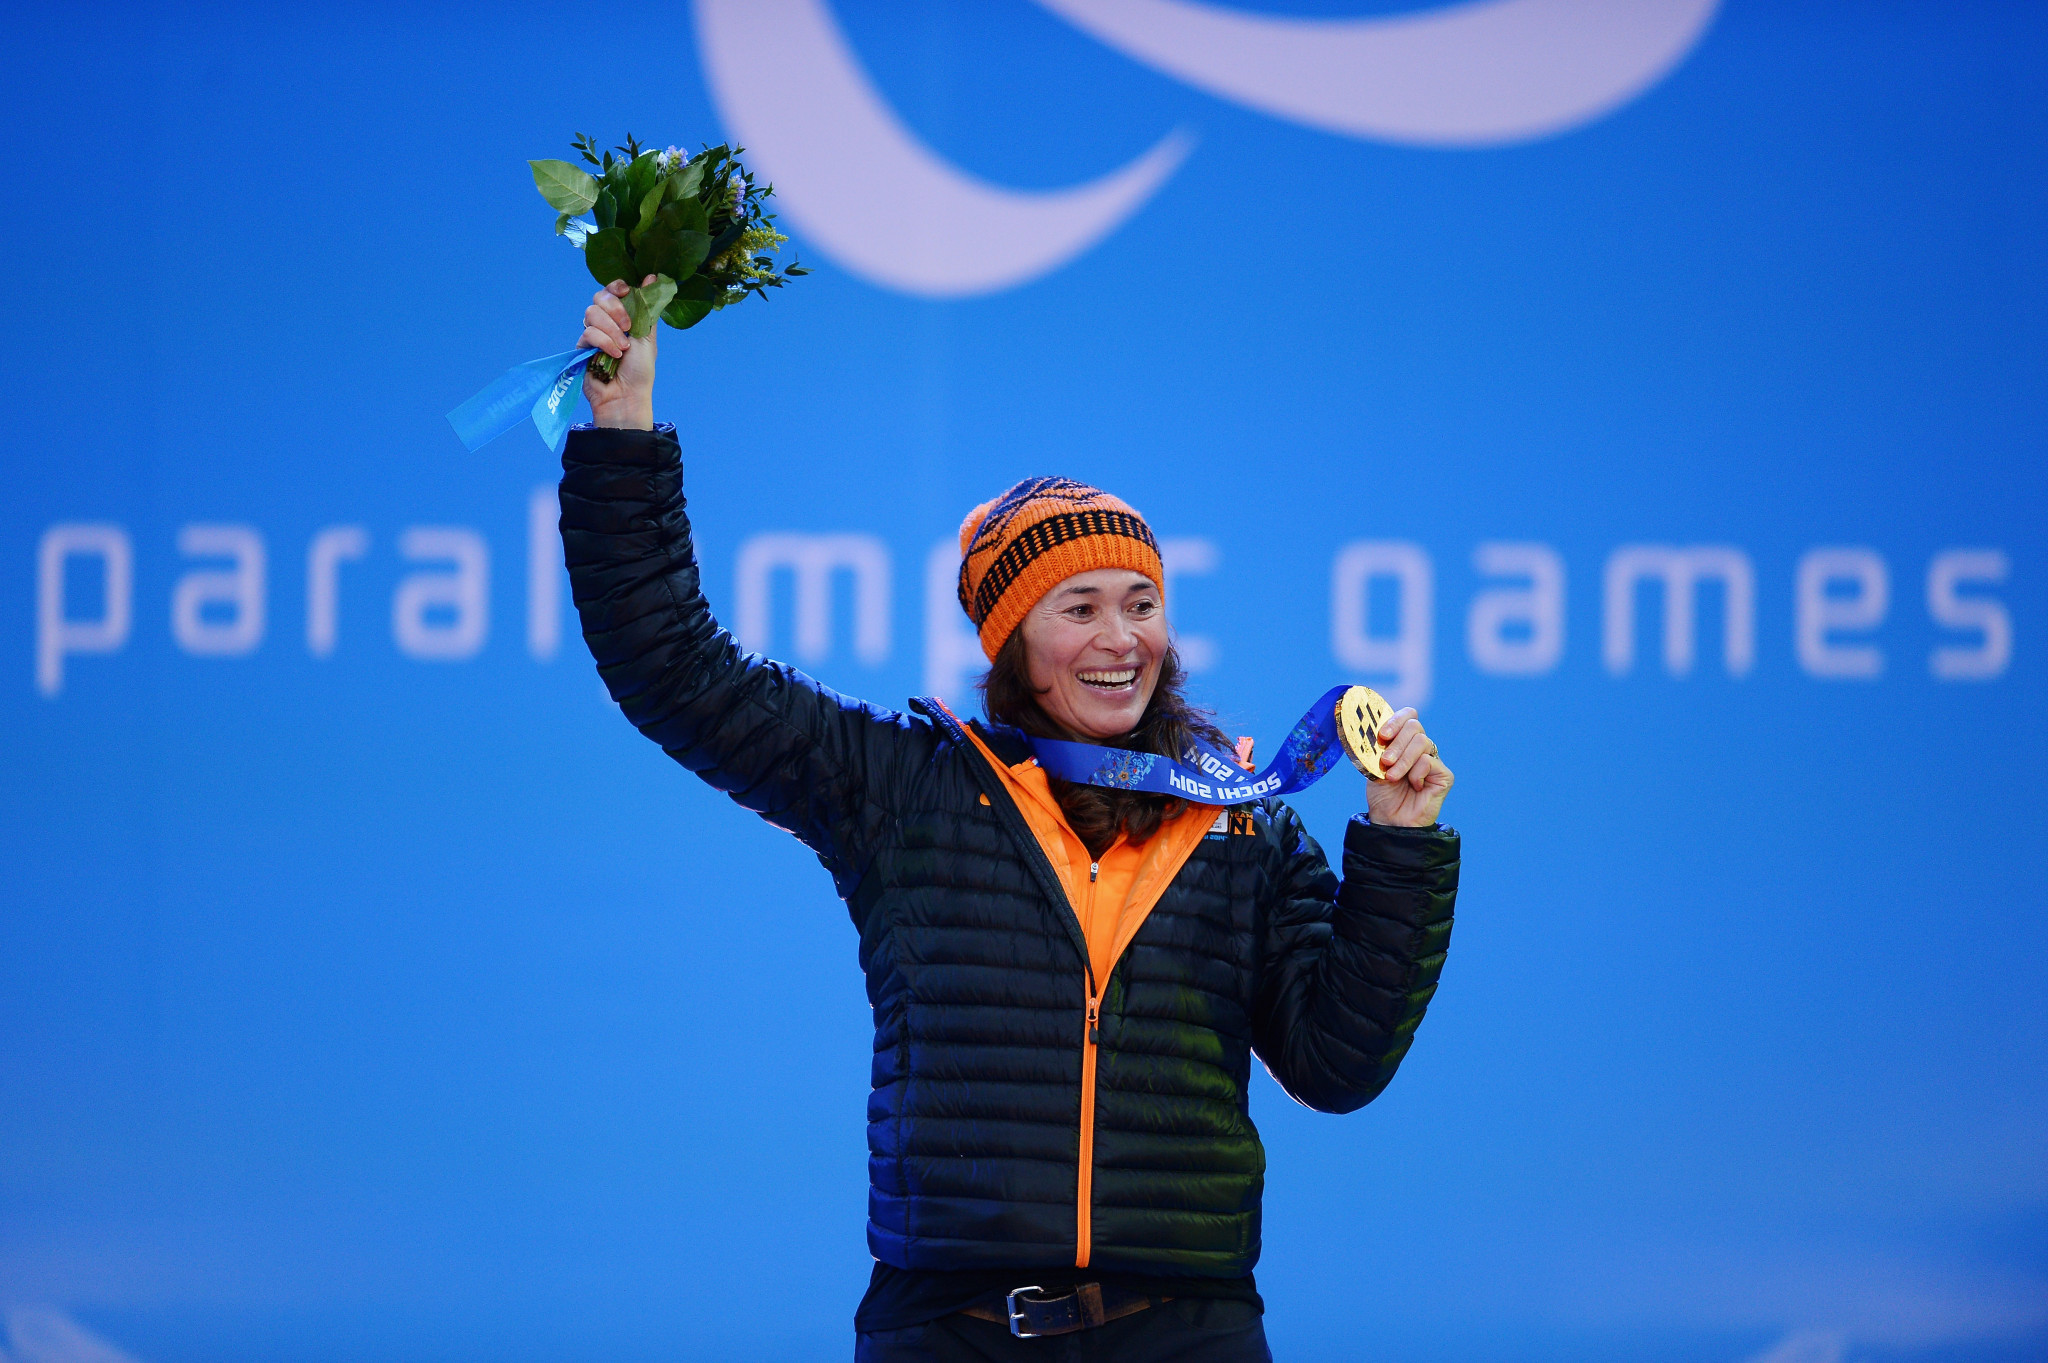 Bibian Mentel-Spee won two Paralympic gold medals at Pyeongchang 2018, despite undergoing cancer treatment ©Getty Images